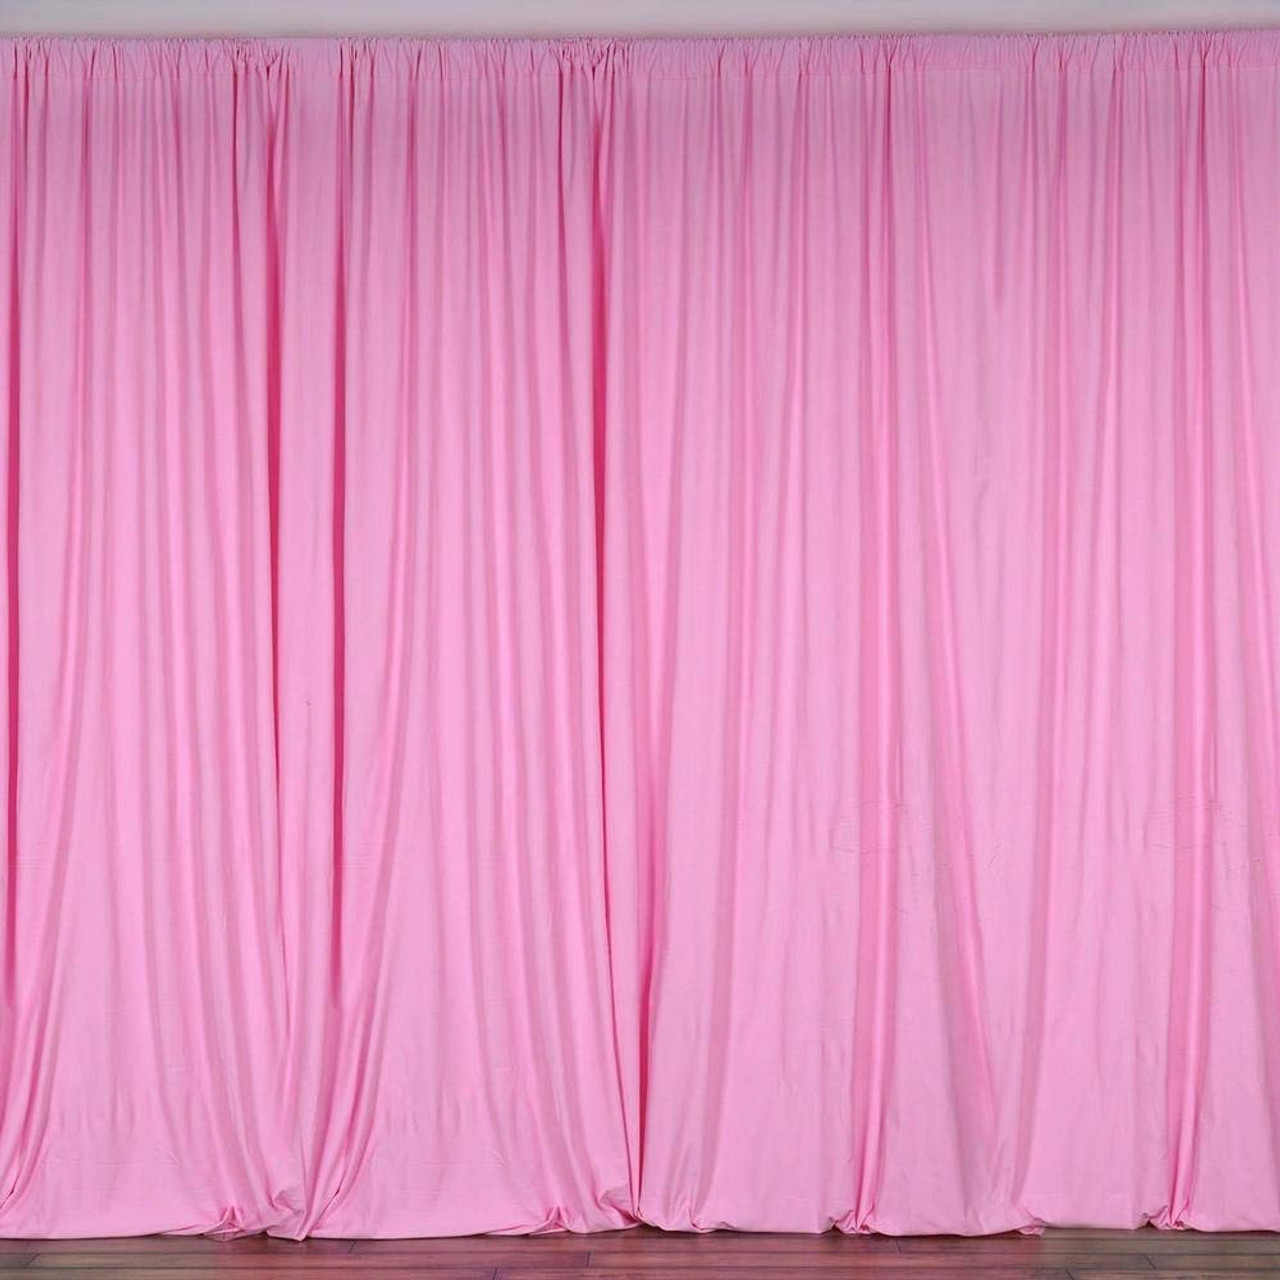 2 Pack | 10 Feet Polyester Backdrop Drapes Curtains Panels with Rod Pockets  - Wedding Ceremony Party Home Window Decorations - Pink - AK Trading Co.